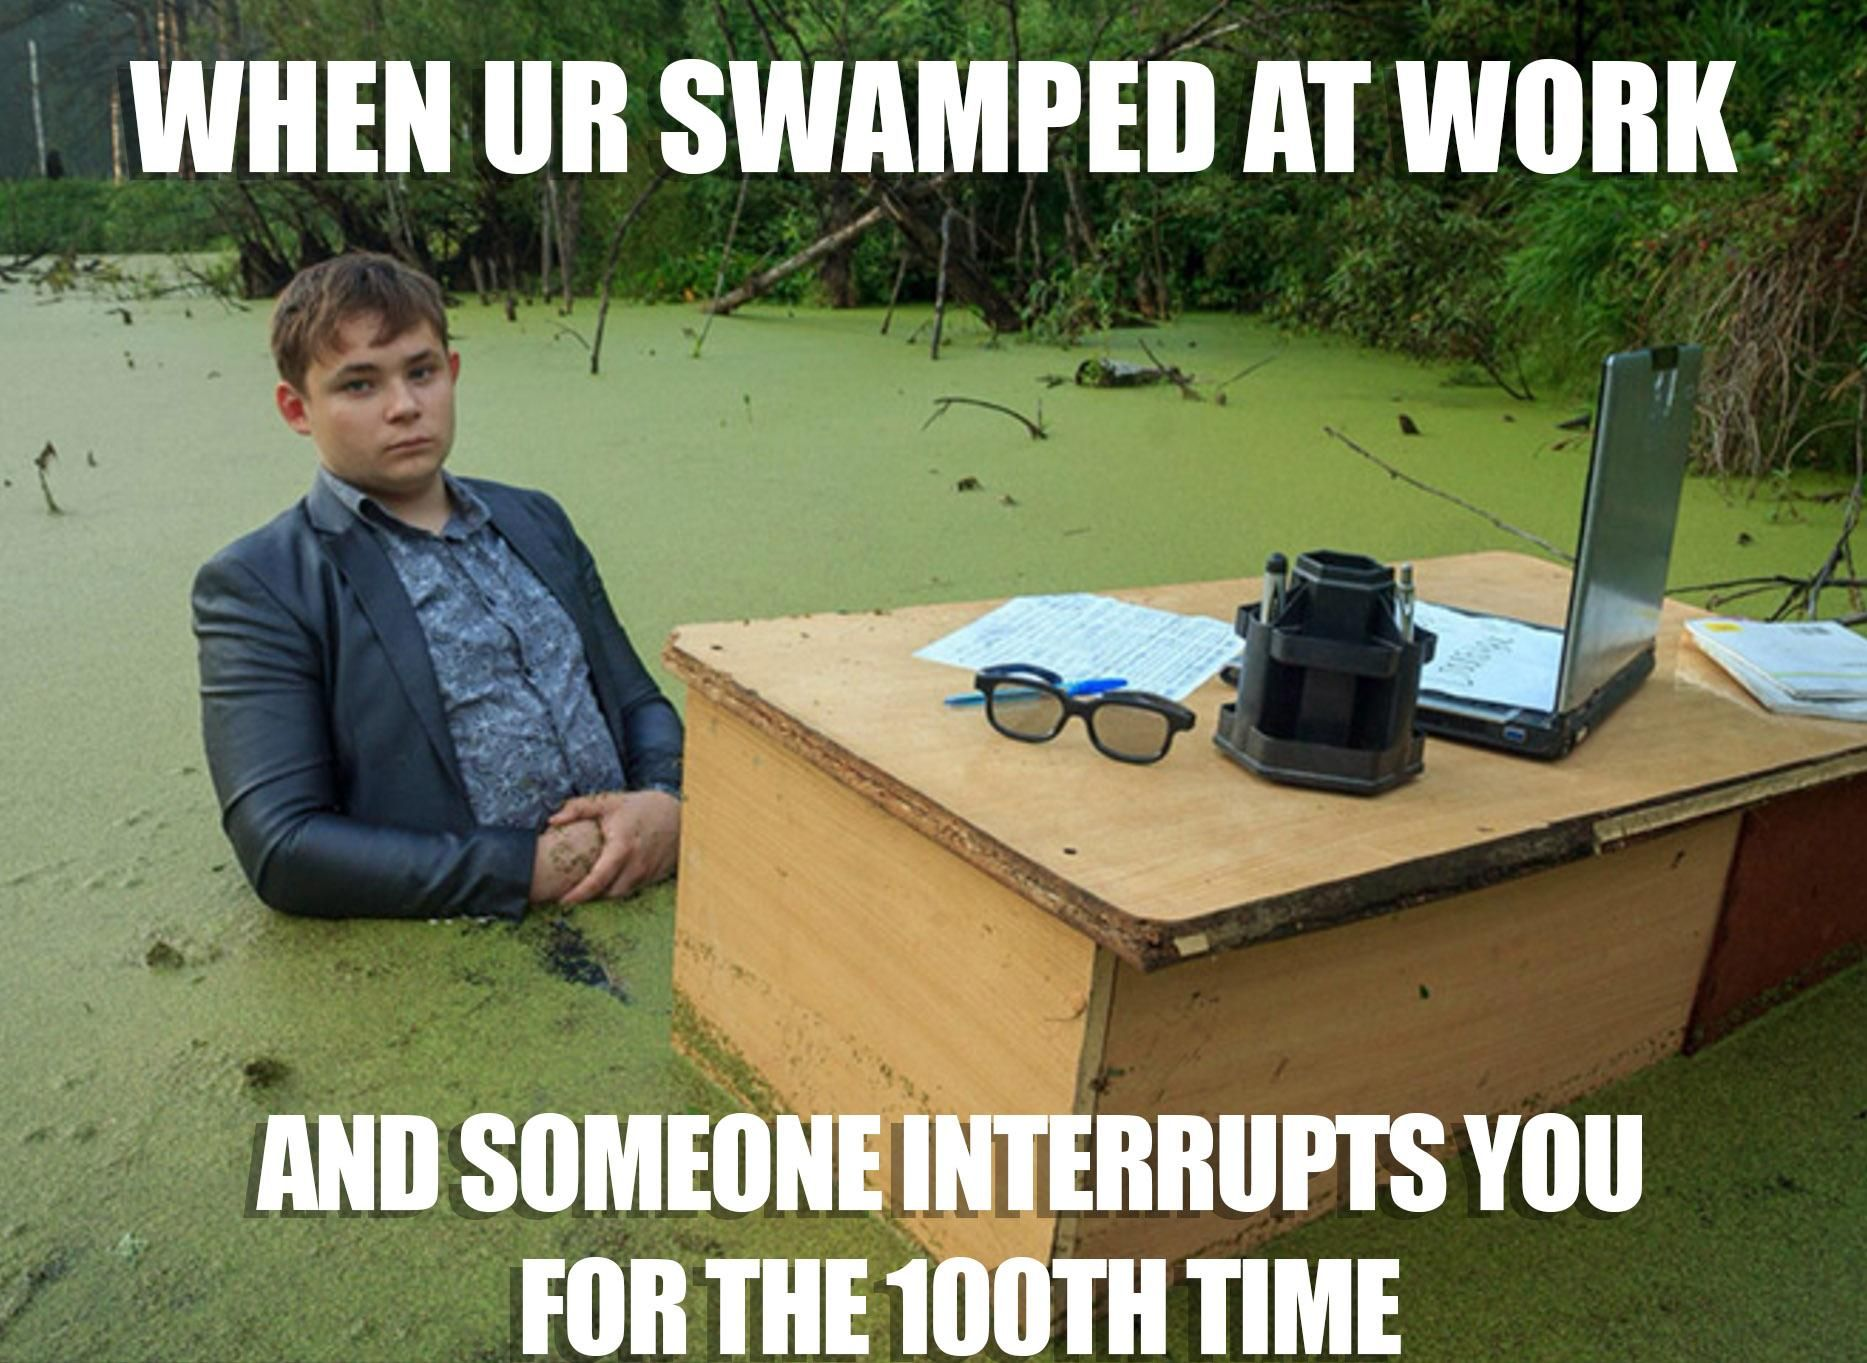 Funny Meme For Tuesday : R freshmemes when you re swamped work front desk